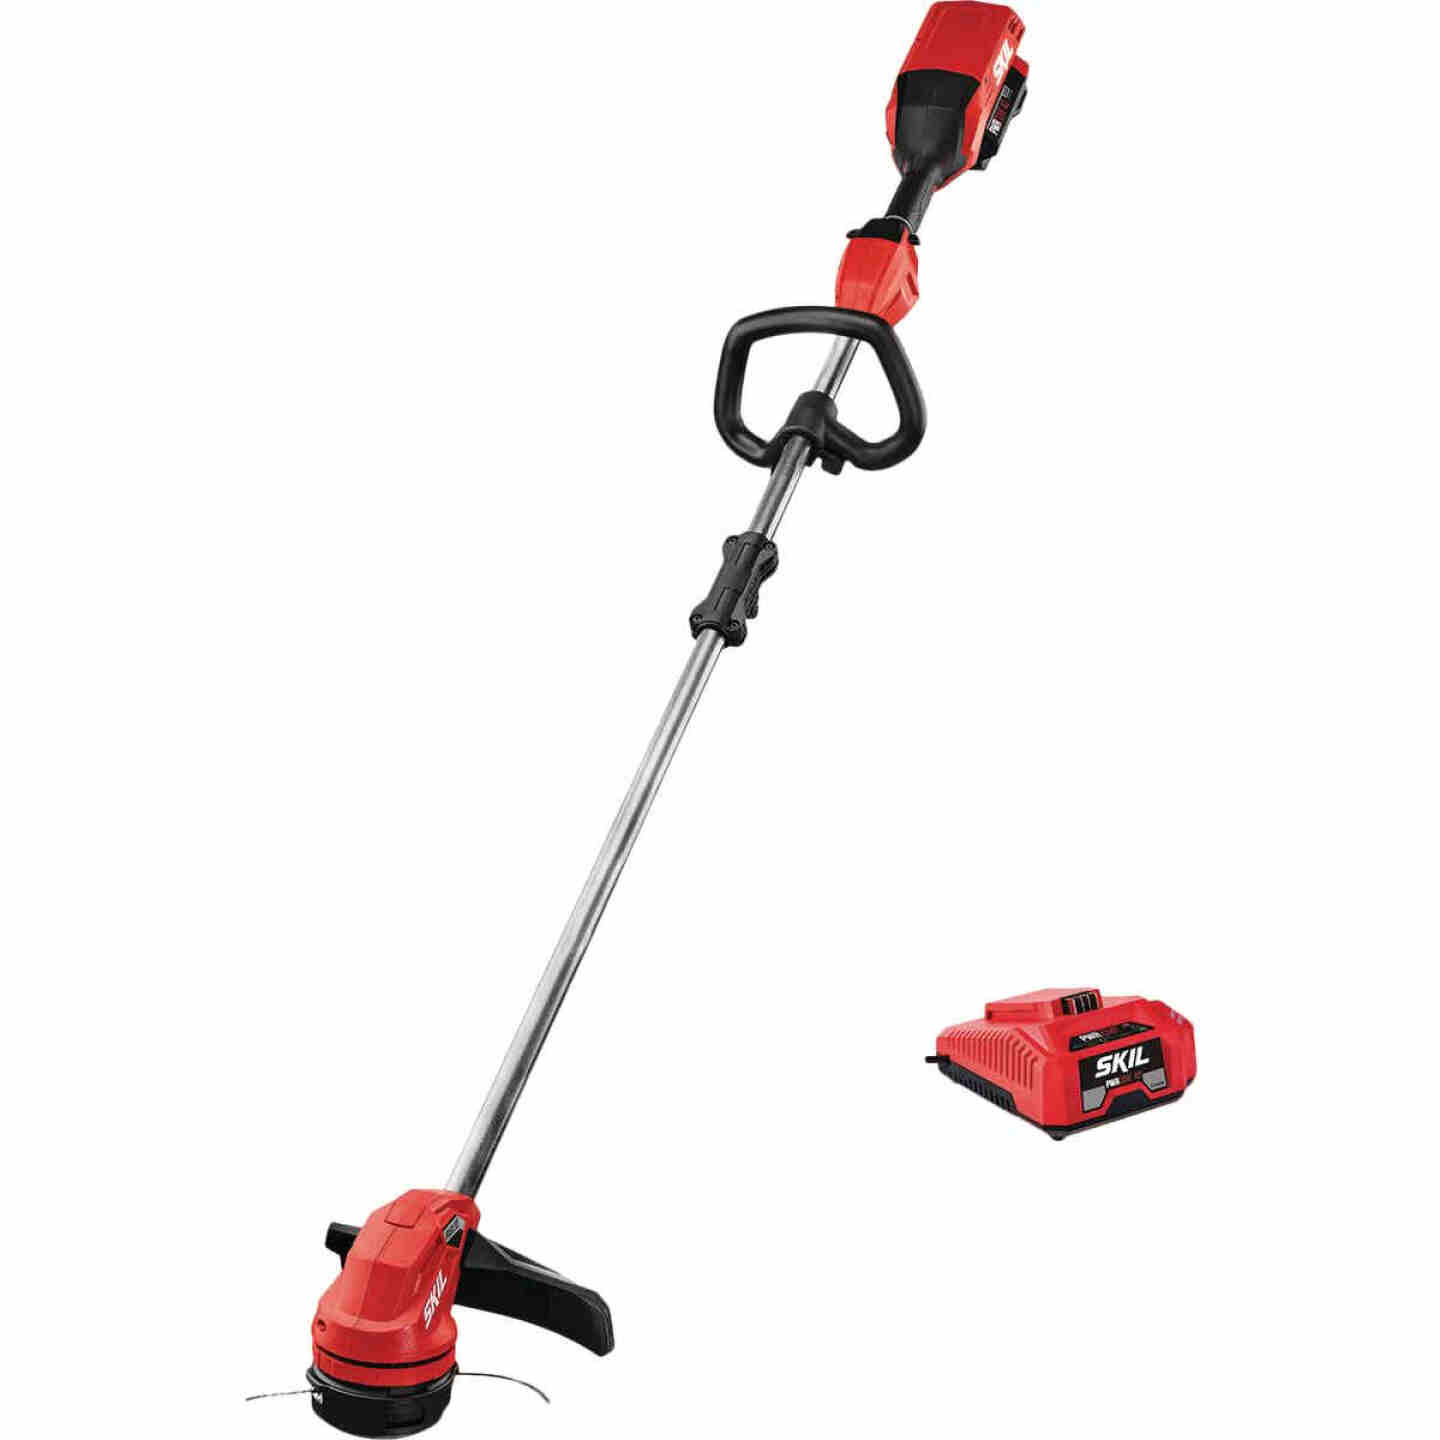 SKIL PWRCore 40V Brushless 14 In. String Trimmer Kit with Twist Load and AutoPWRJump Charger Image 1